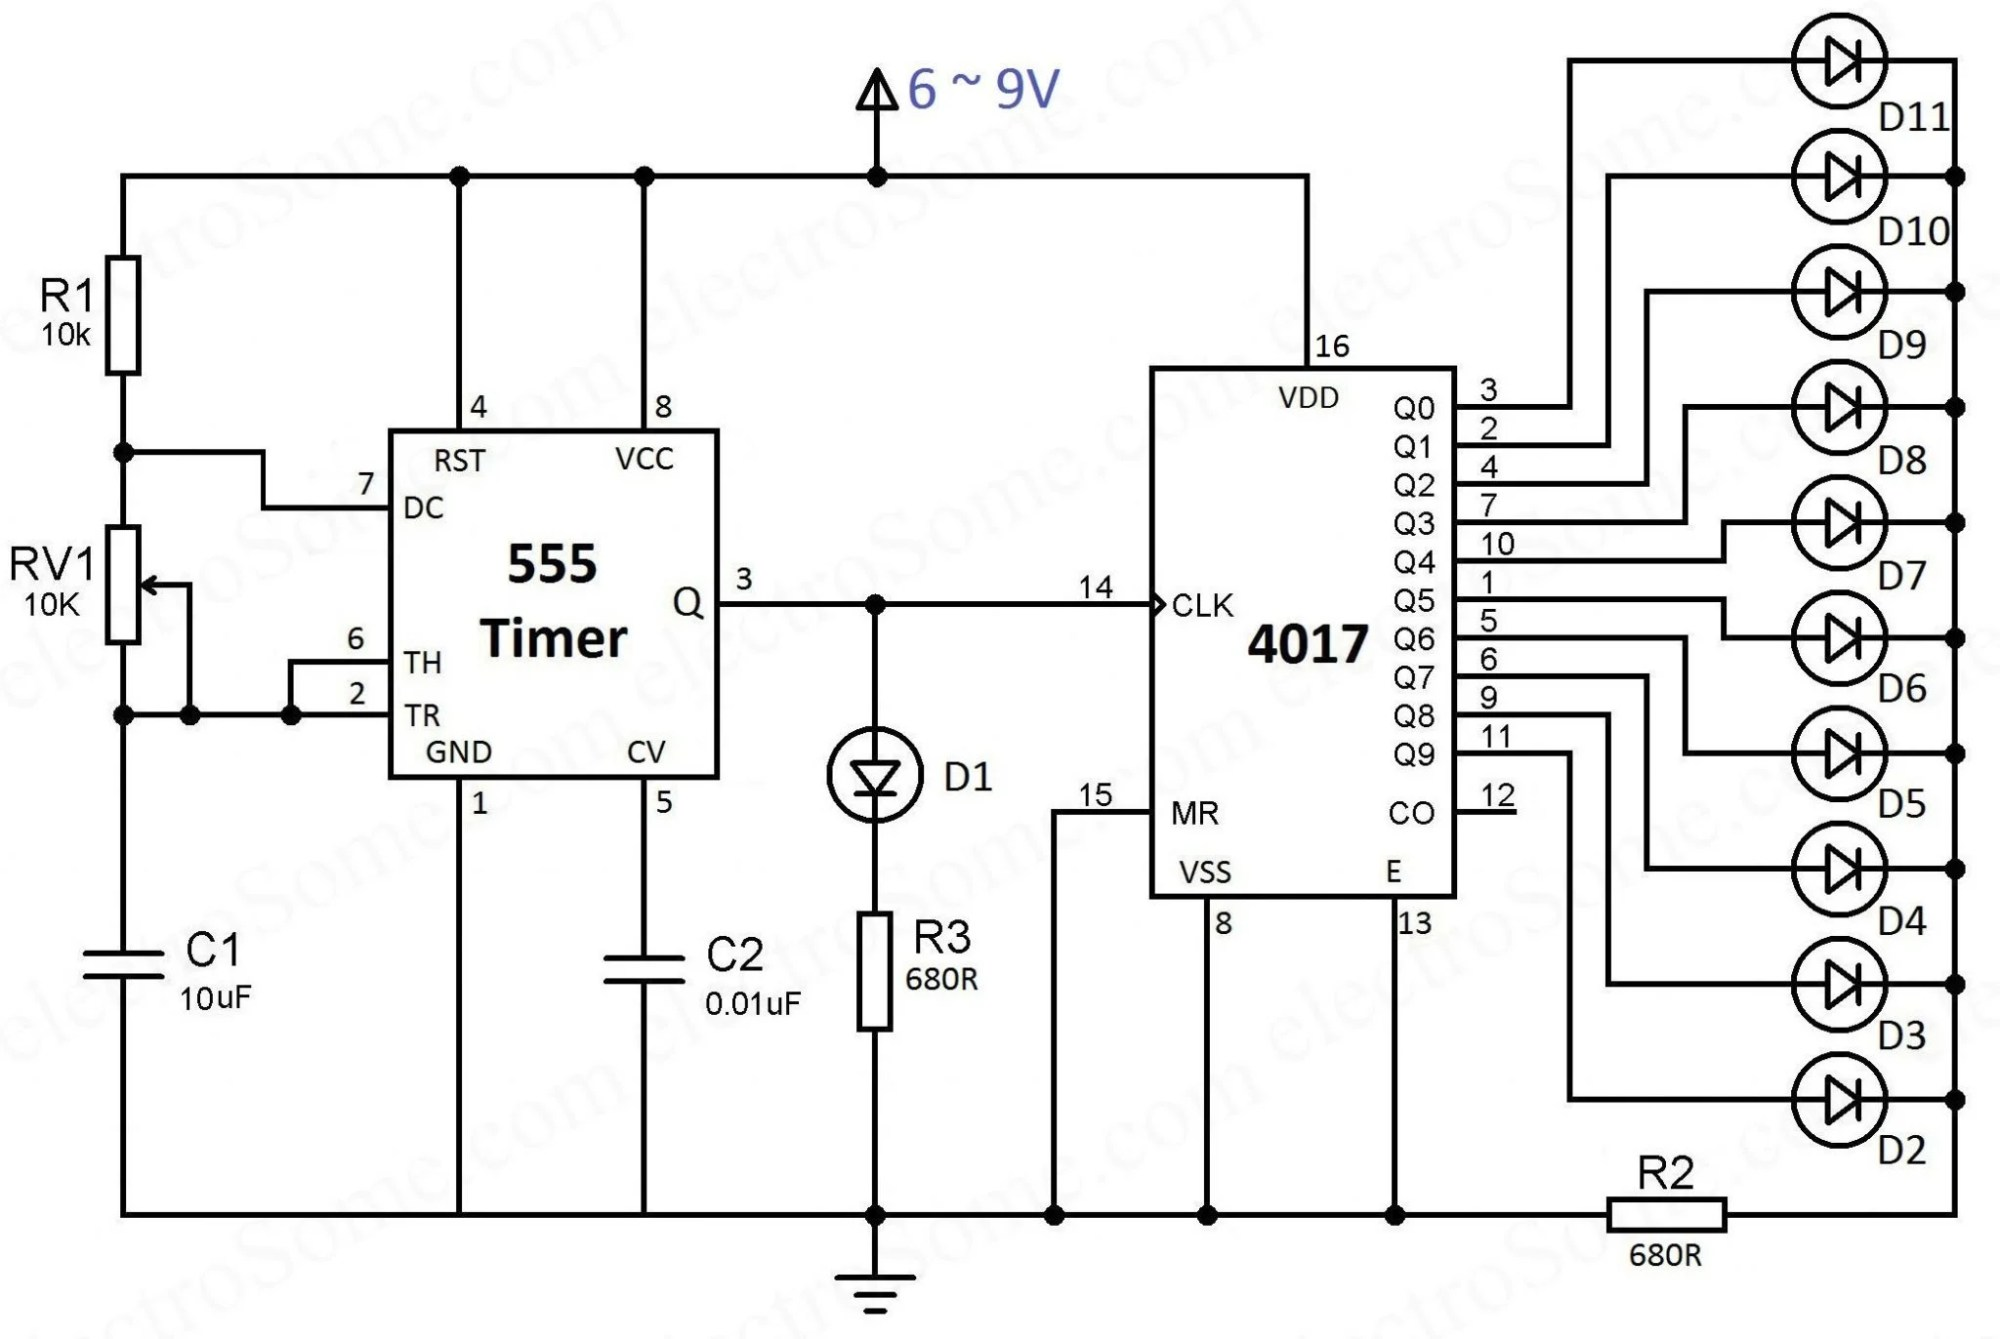 hight resolution of led chaser using 4017 counter and 555 timer wave inverter circuit diagram on decade counter circuit schematic